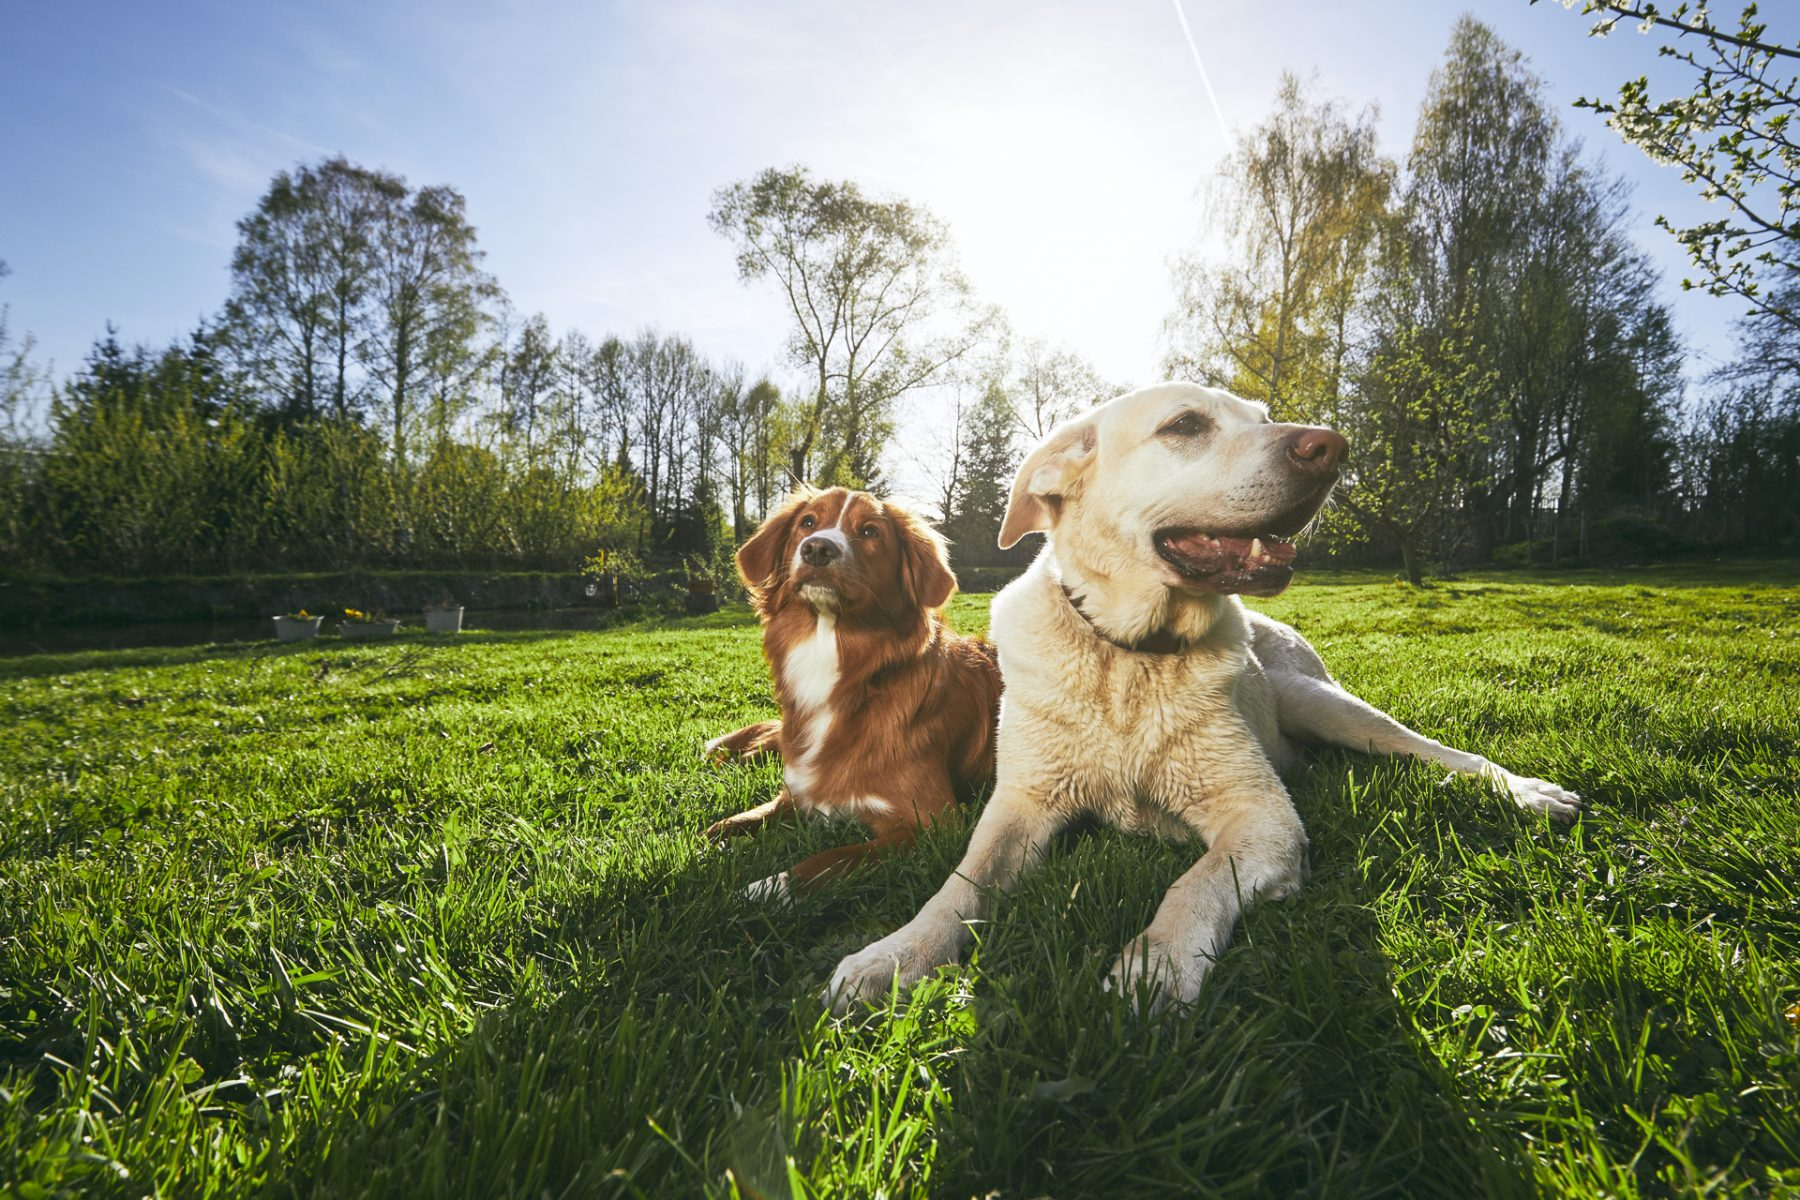 Best cbd oil for dogs - Rooted Hemp Co